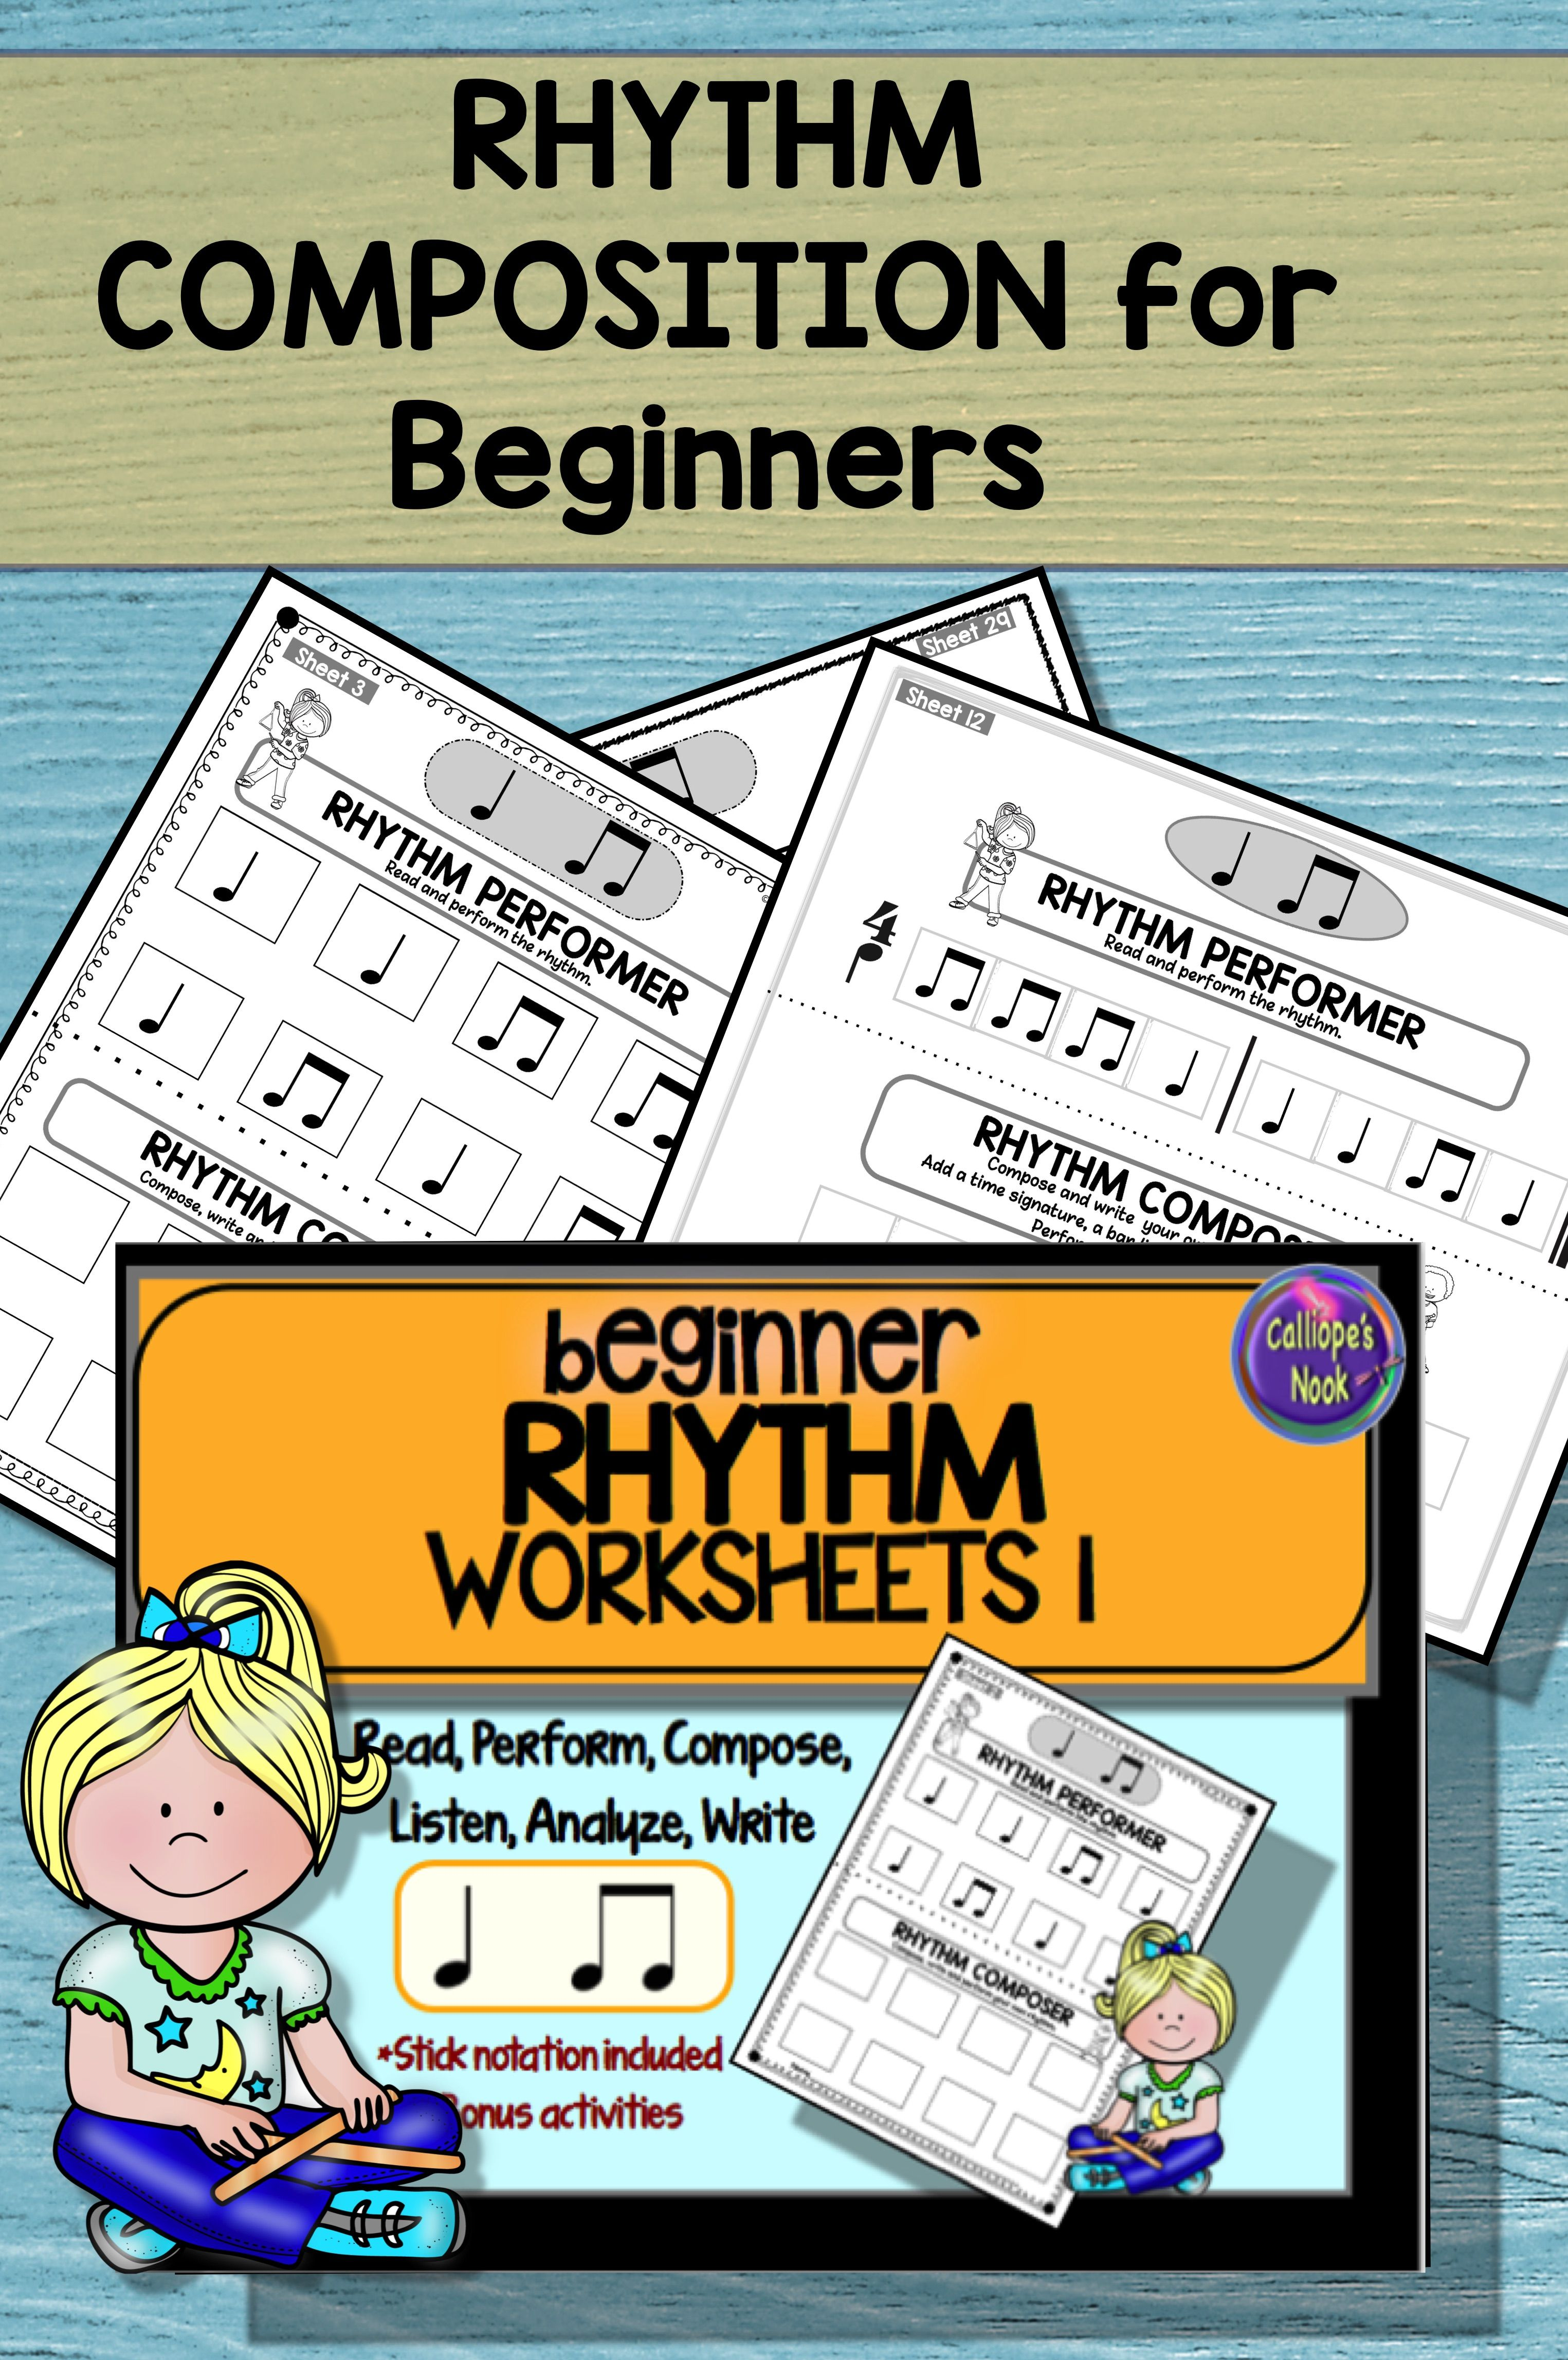 Keep Students Engaged With Simple Reading Composition Form And Performance Rhythm Activities This Packe Rhythm Worksheets Music Vocabulary Rhythm Activities [ 4591 x 3050 Pixel ]